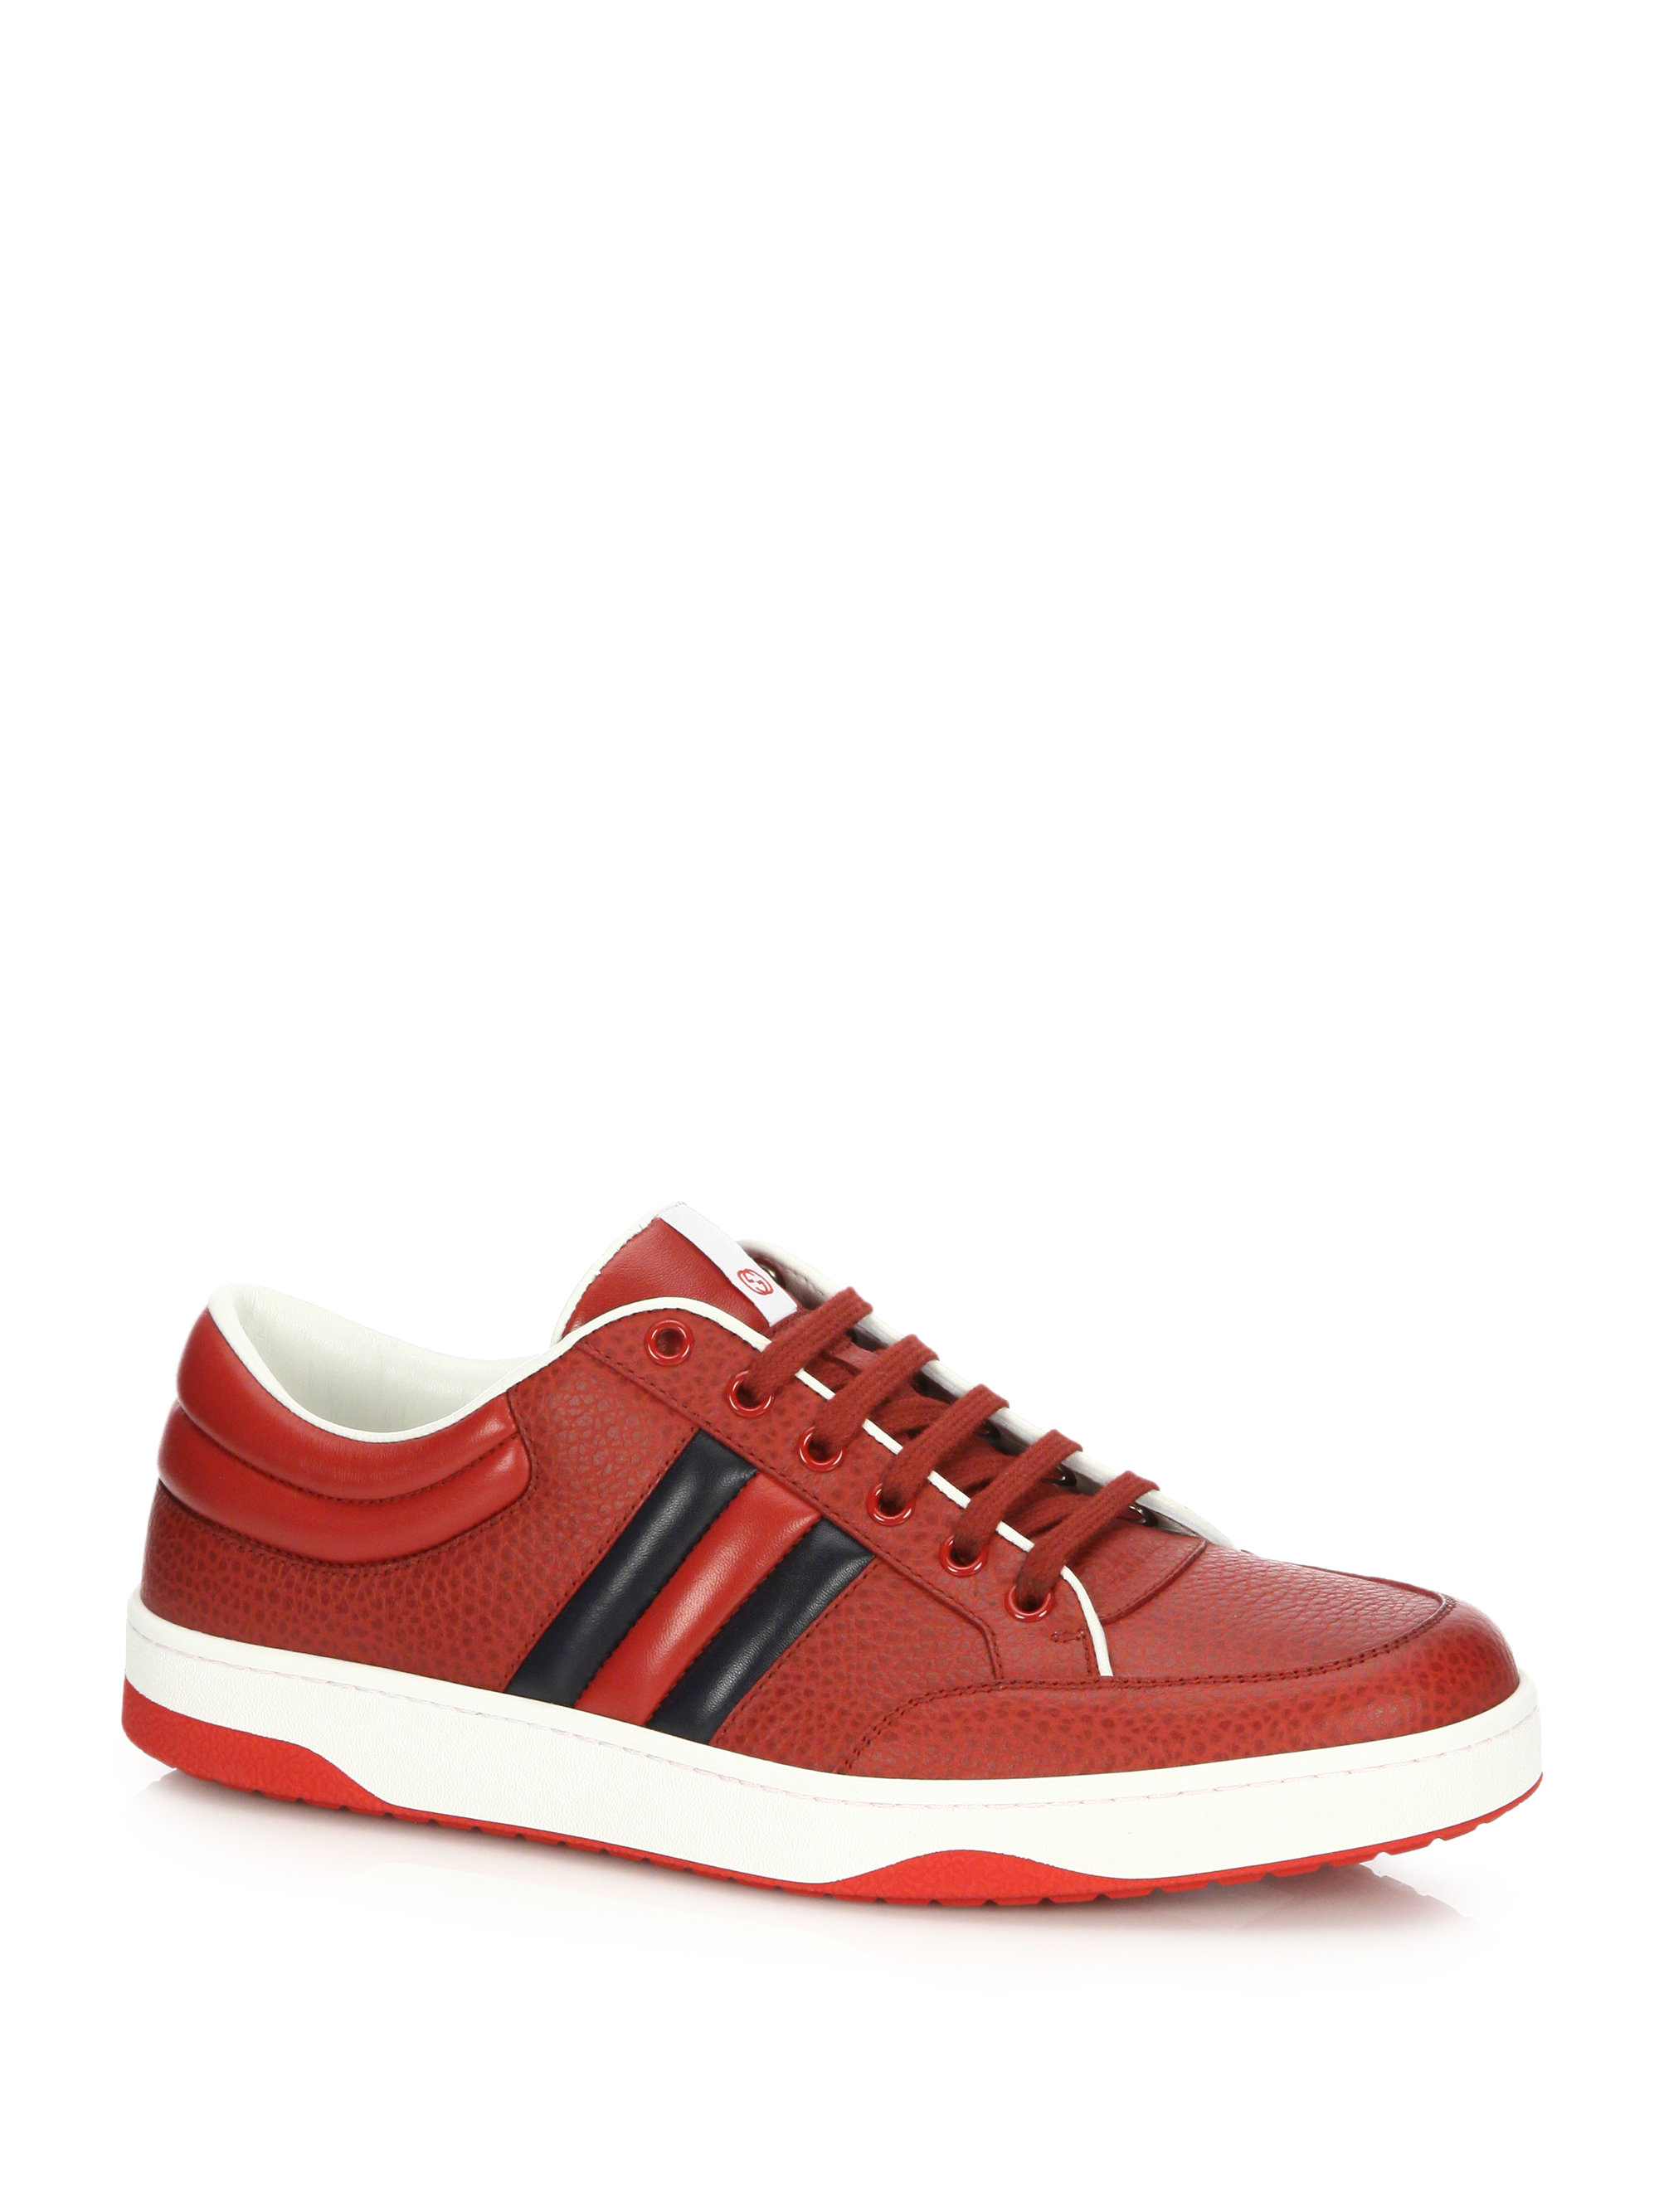 Lyst Gucci Ronnie Low Leather Sneakers In Red For Men